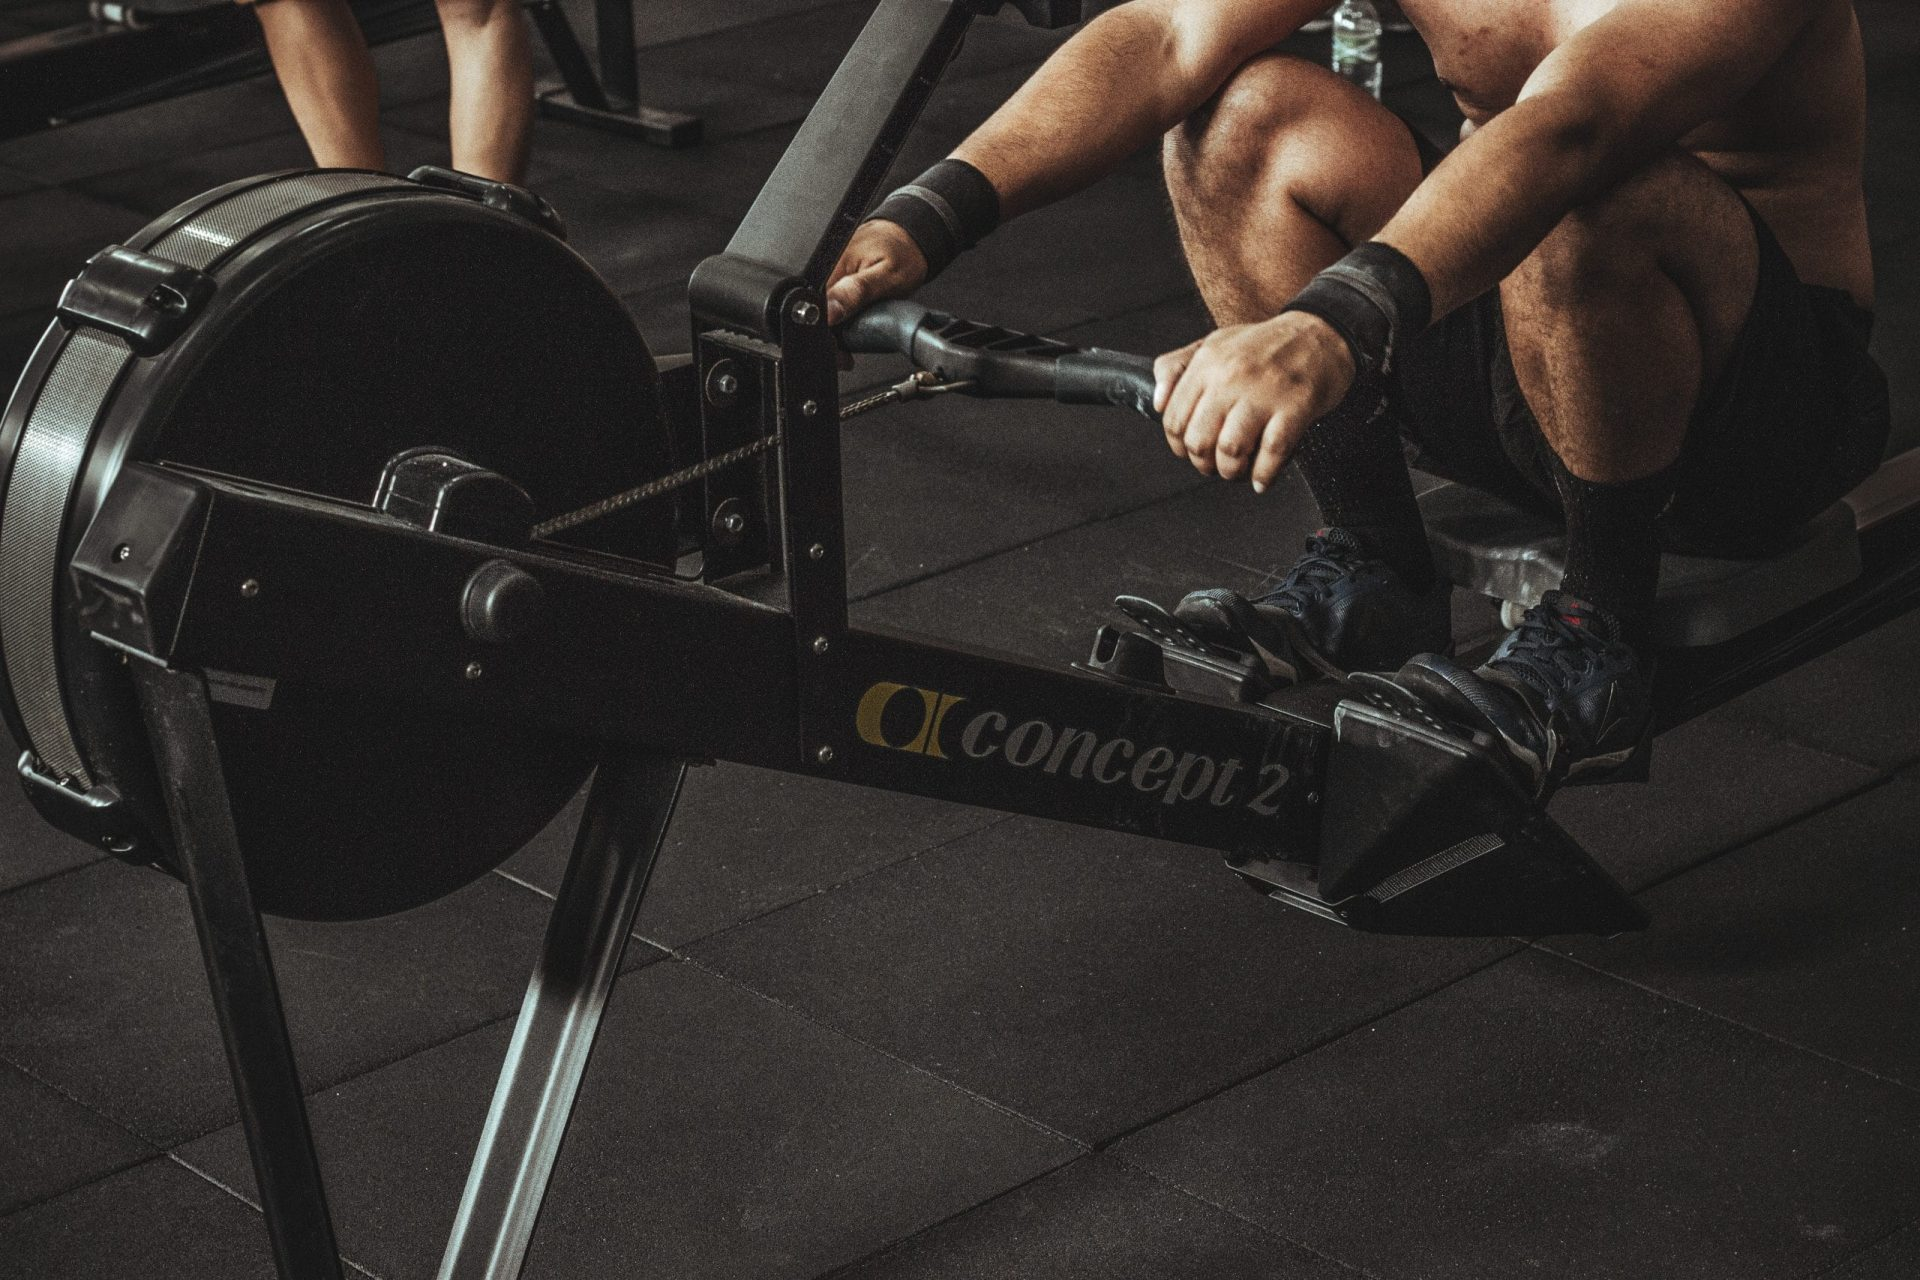 Refurbished Concept2 Rowers